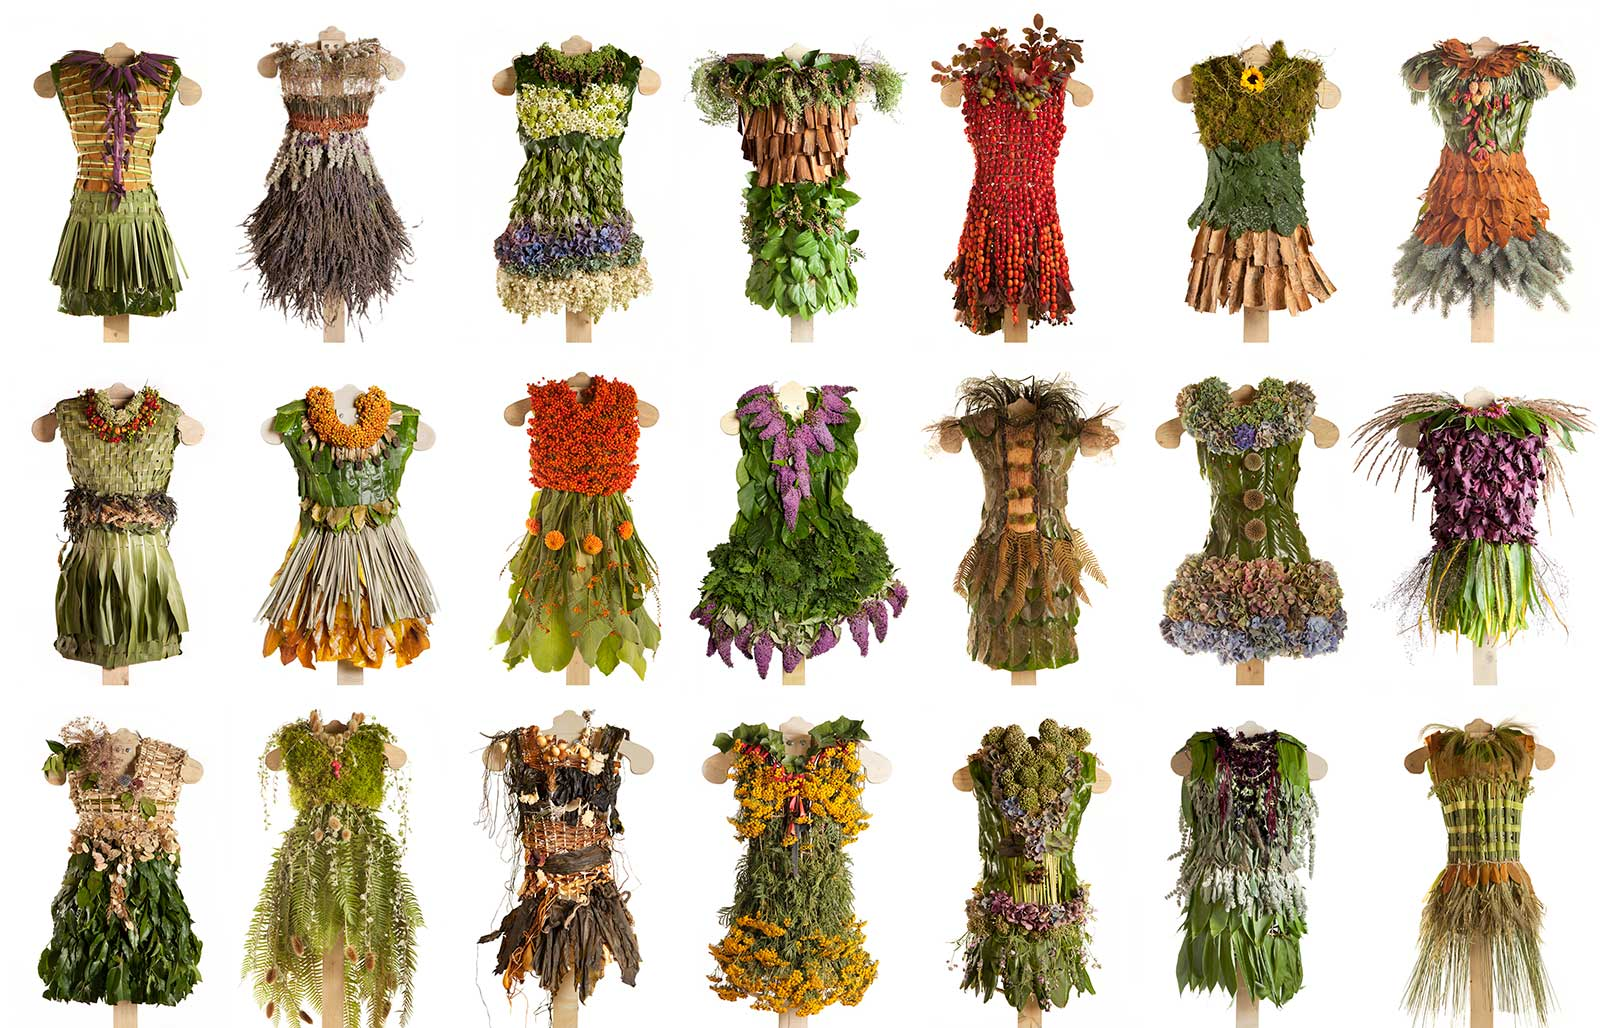 series of dresses made from plants